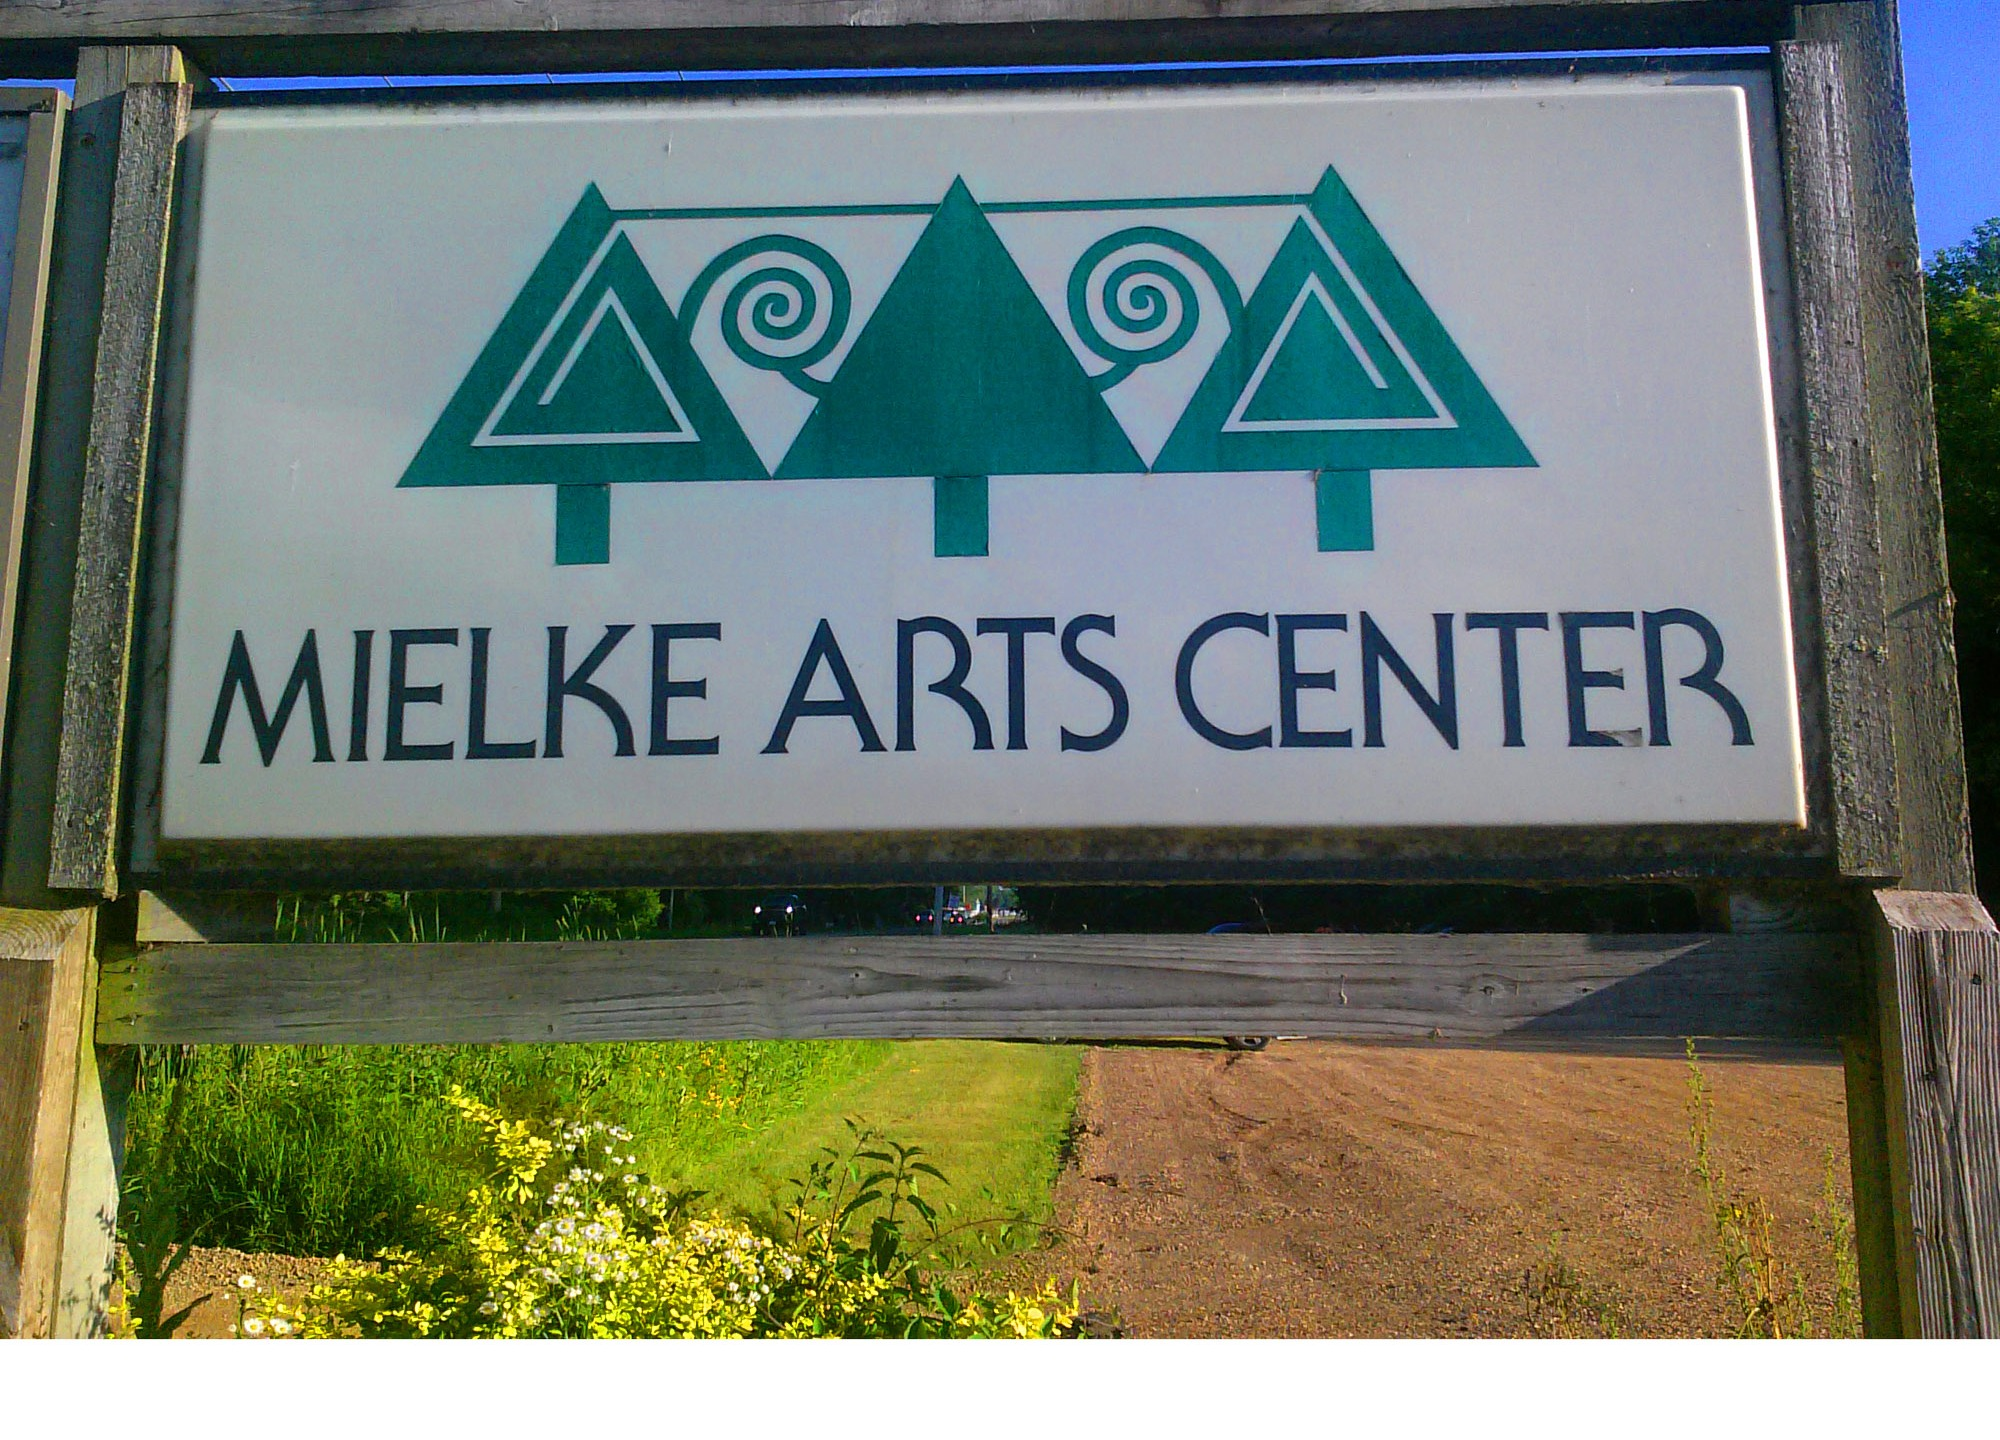 Mielke Arts Center sign_1546690146442.jpg.jpg